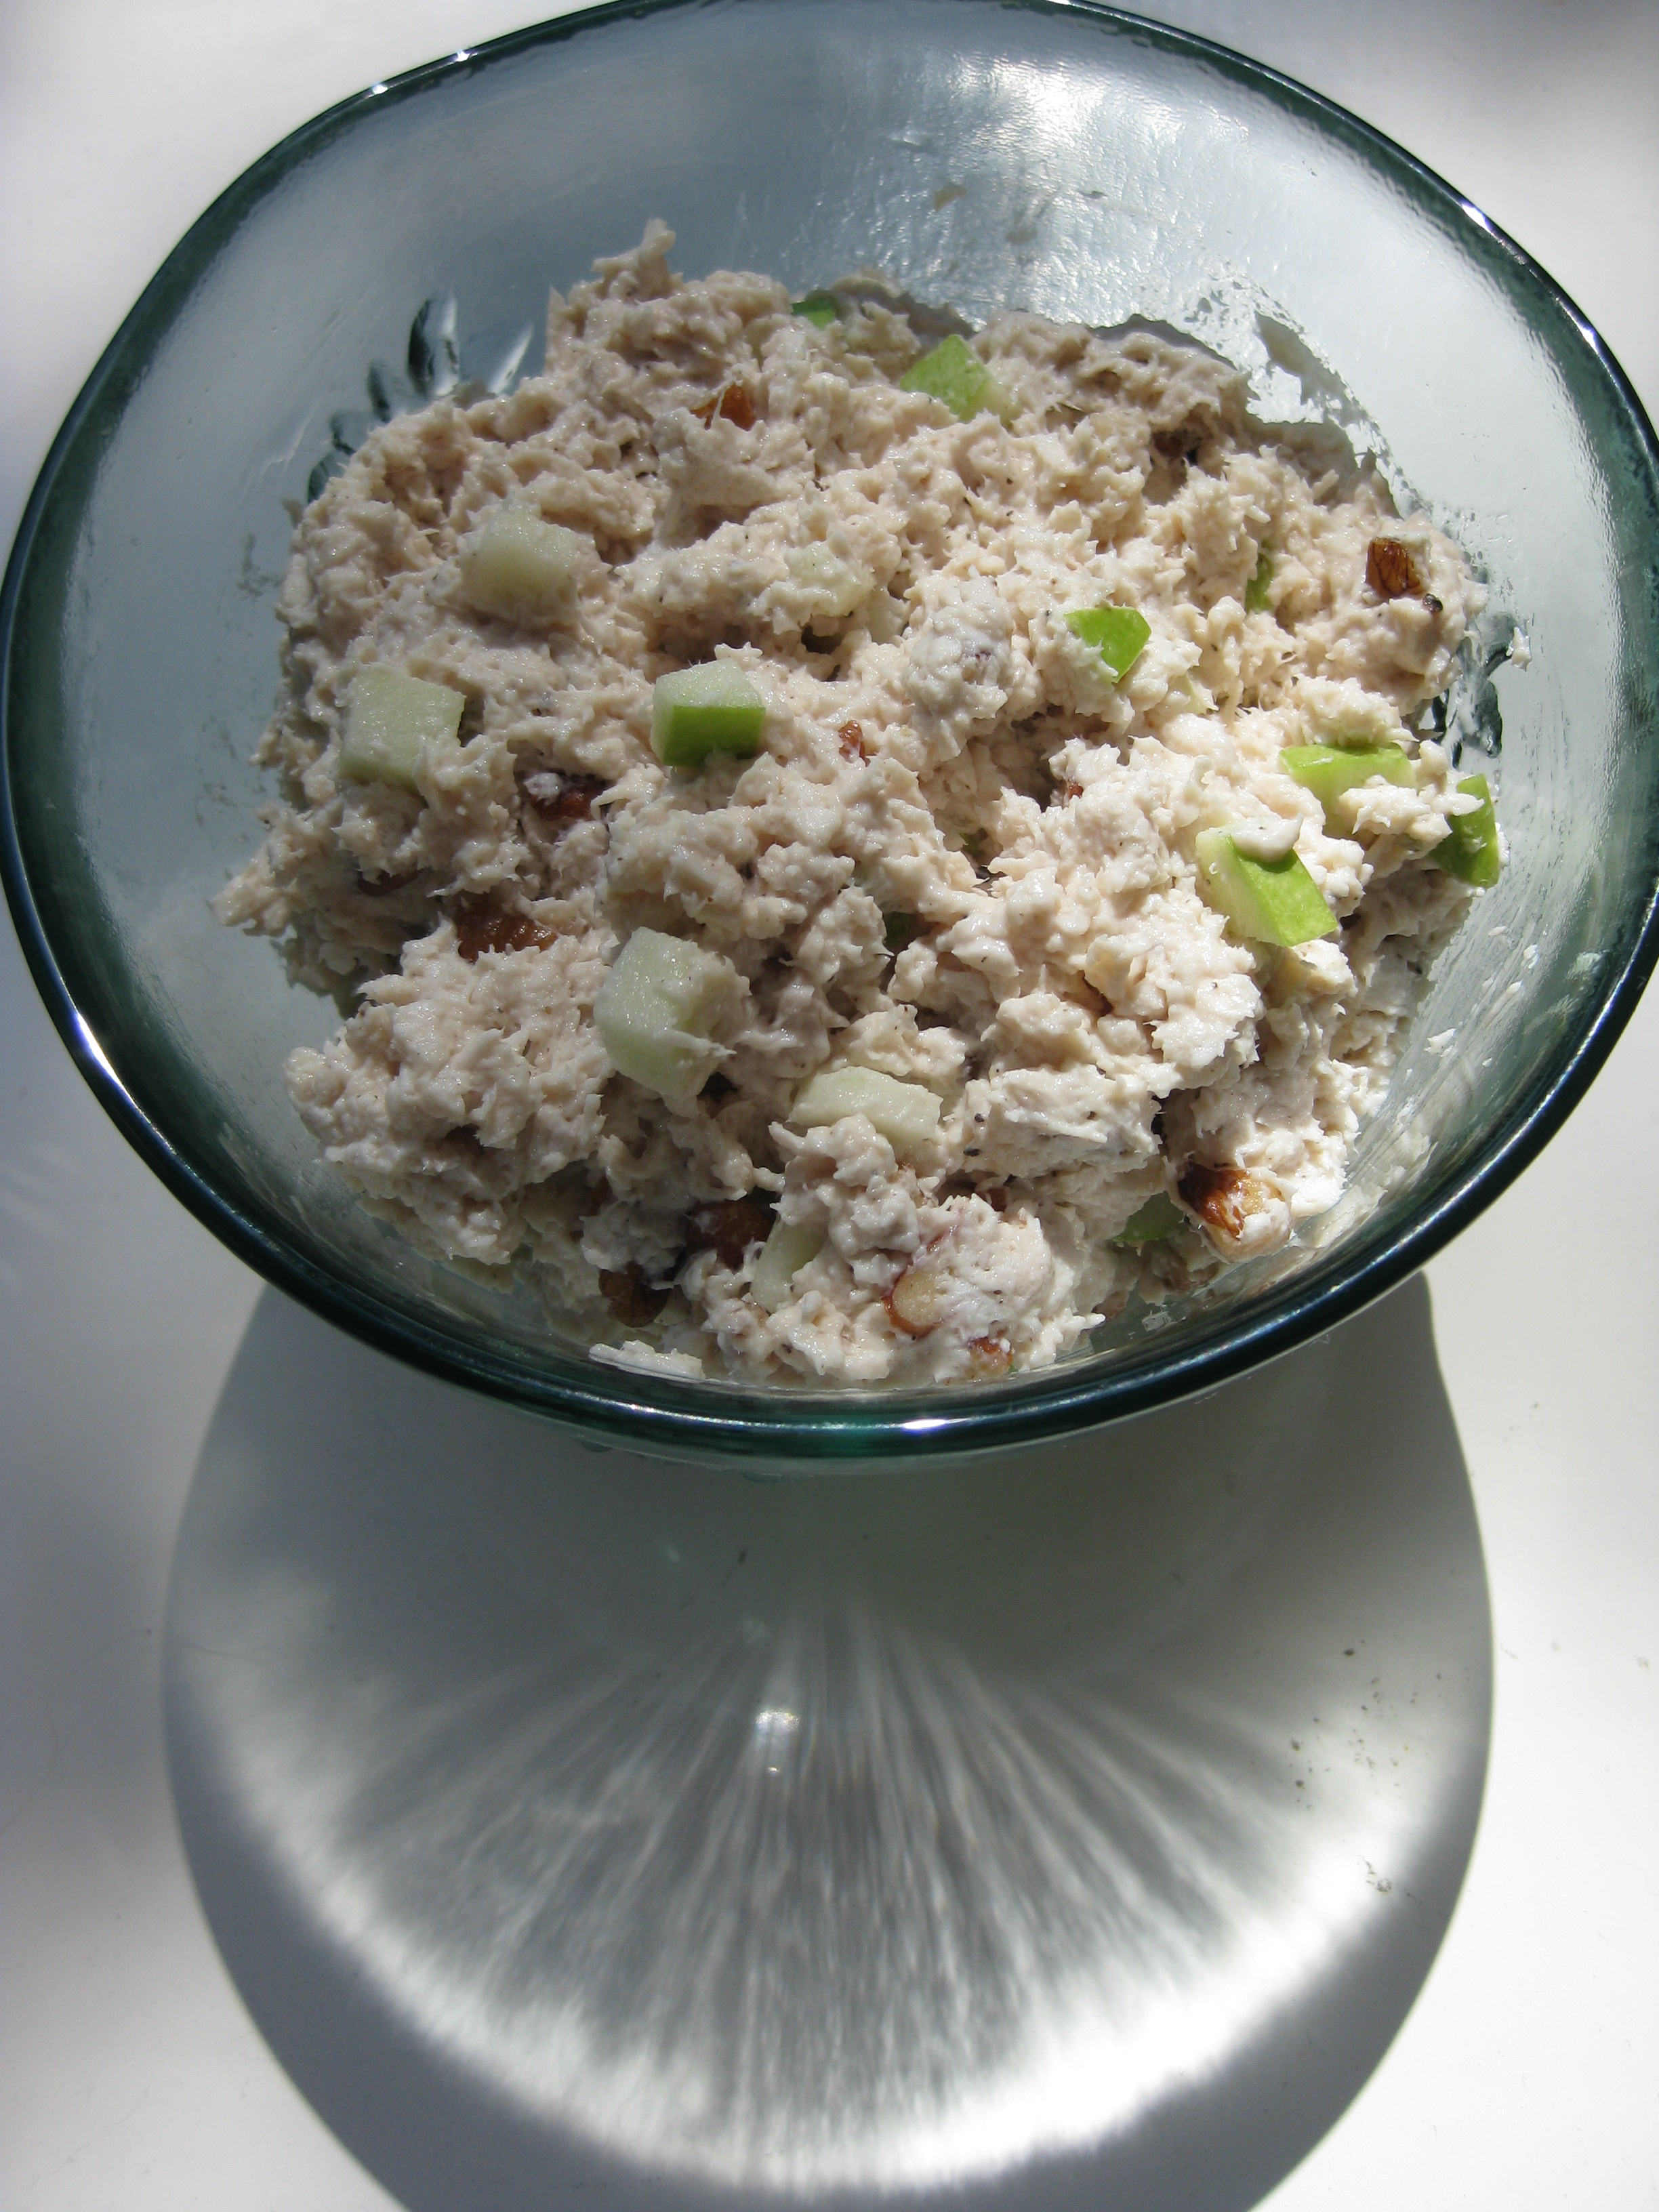 Luann's Chicken Salad